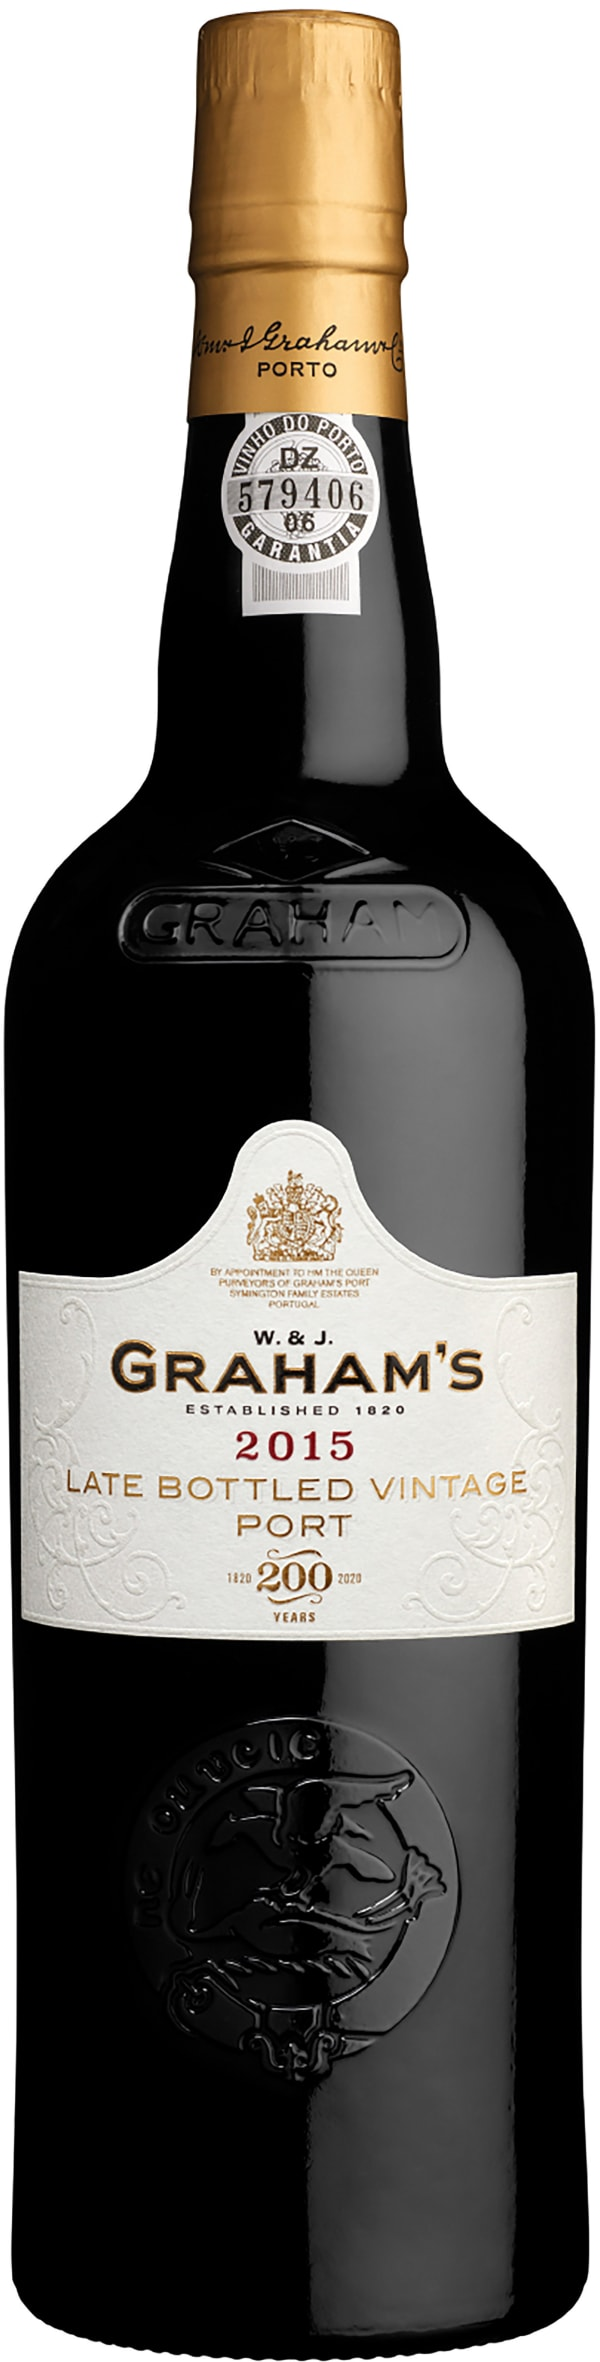 Graham's Late Bottled Vintage Port 2014